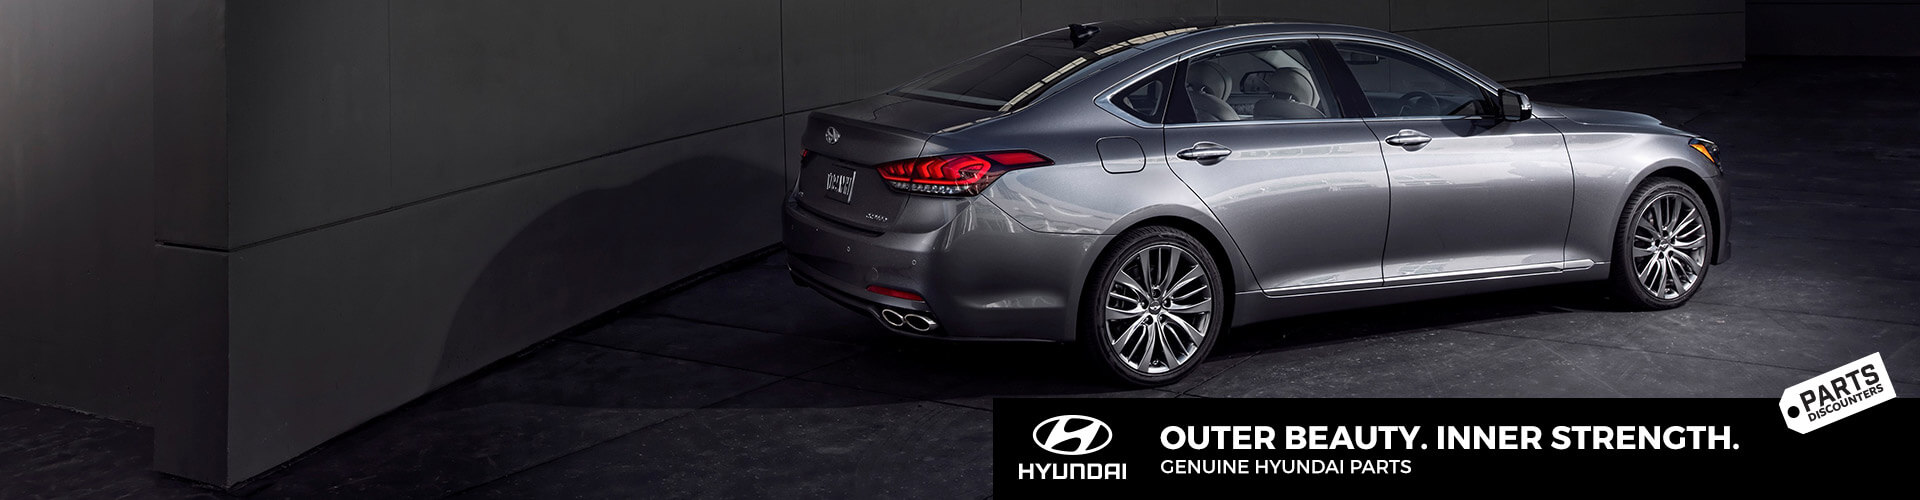 Hyundai OEM parts and accessories